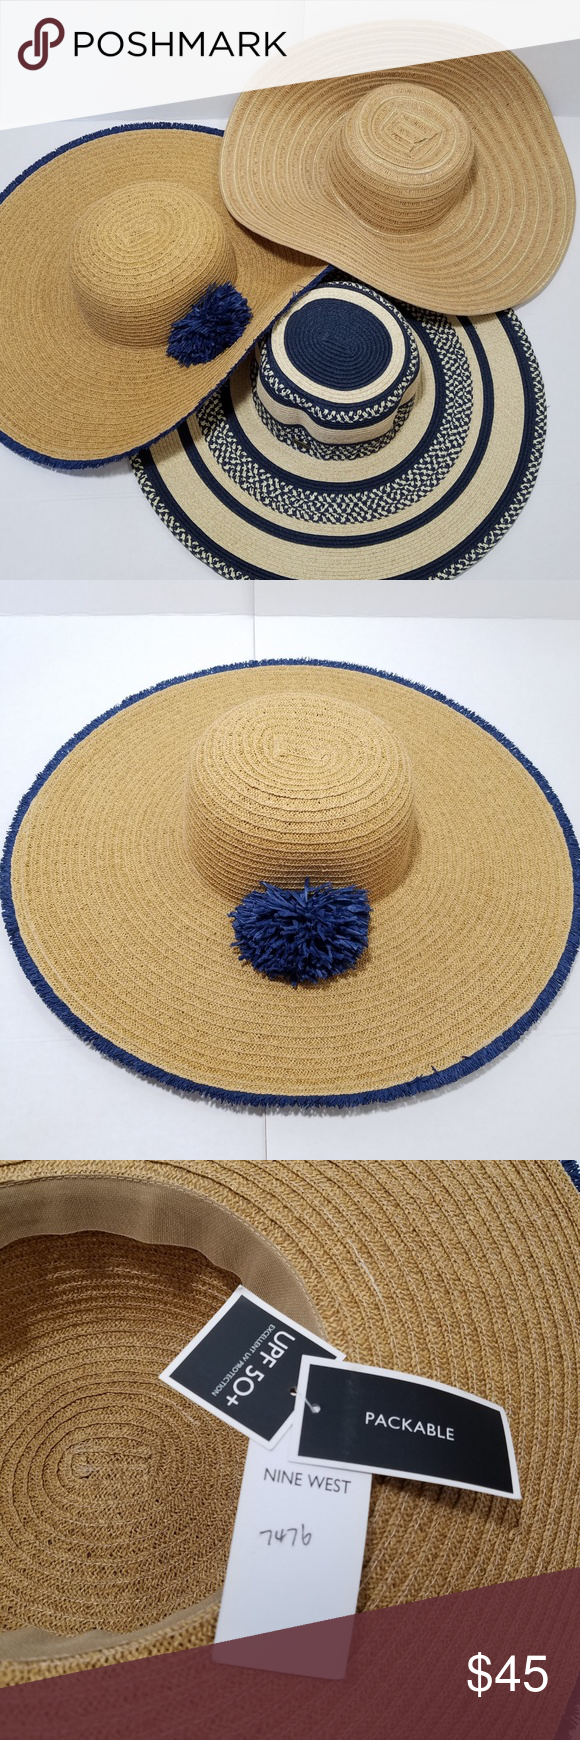 1d8bfea25 packable SPF 50 floppy beach hat Nine West NWOT This packable ...